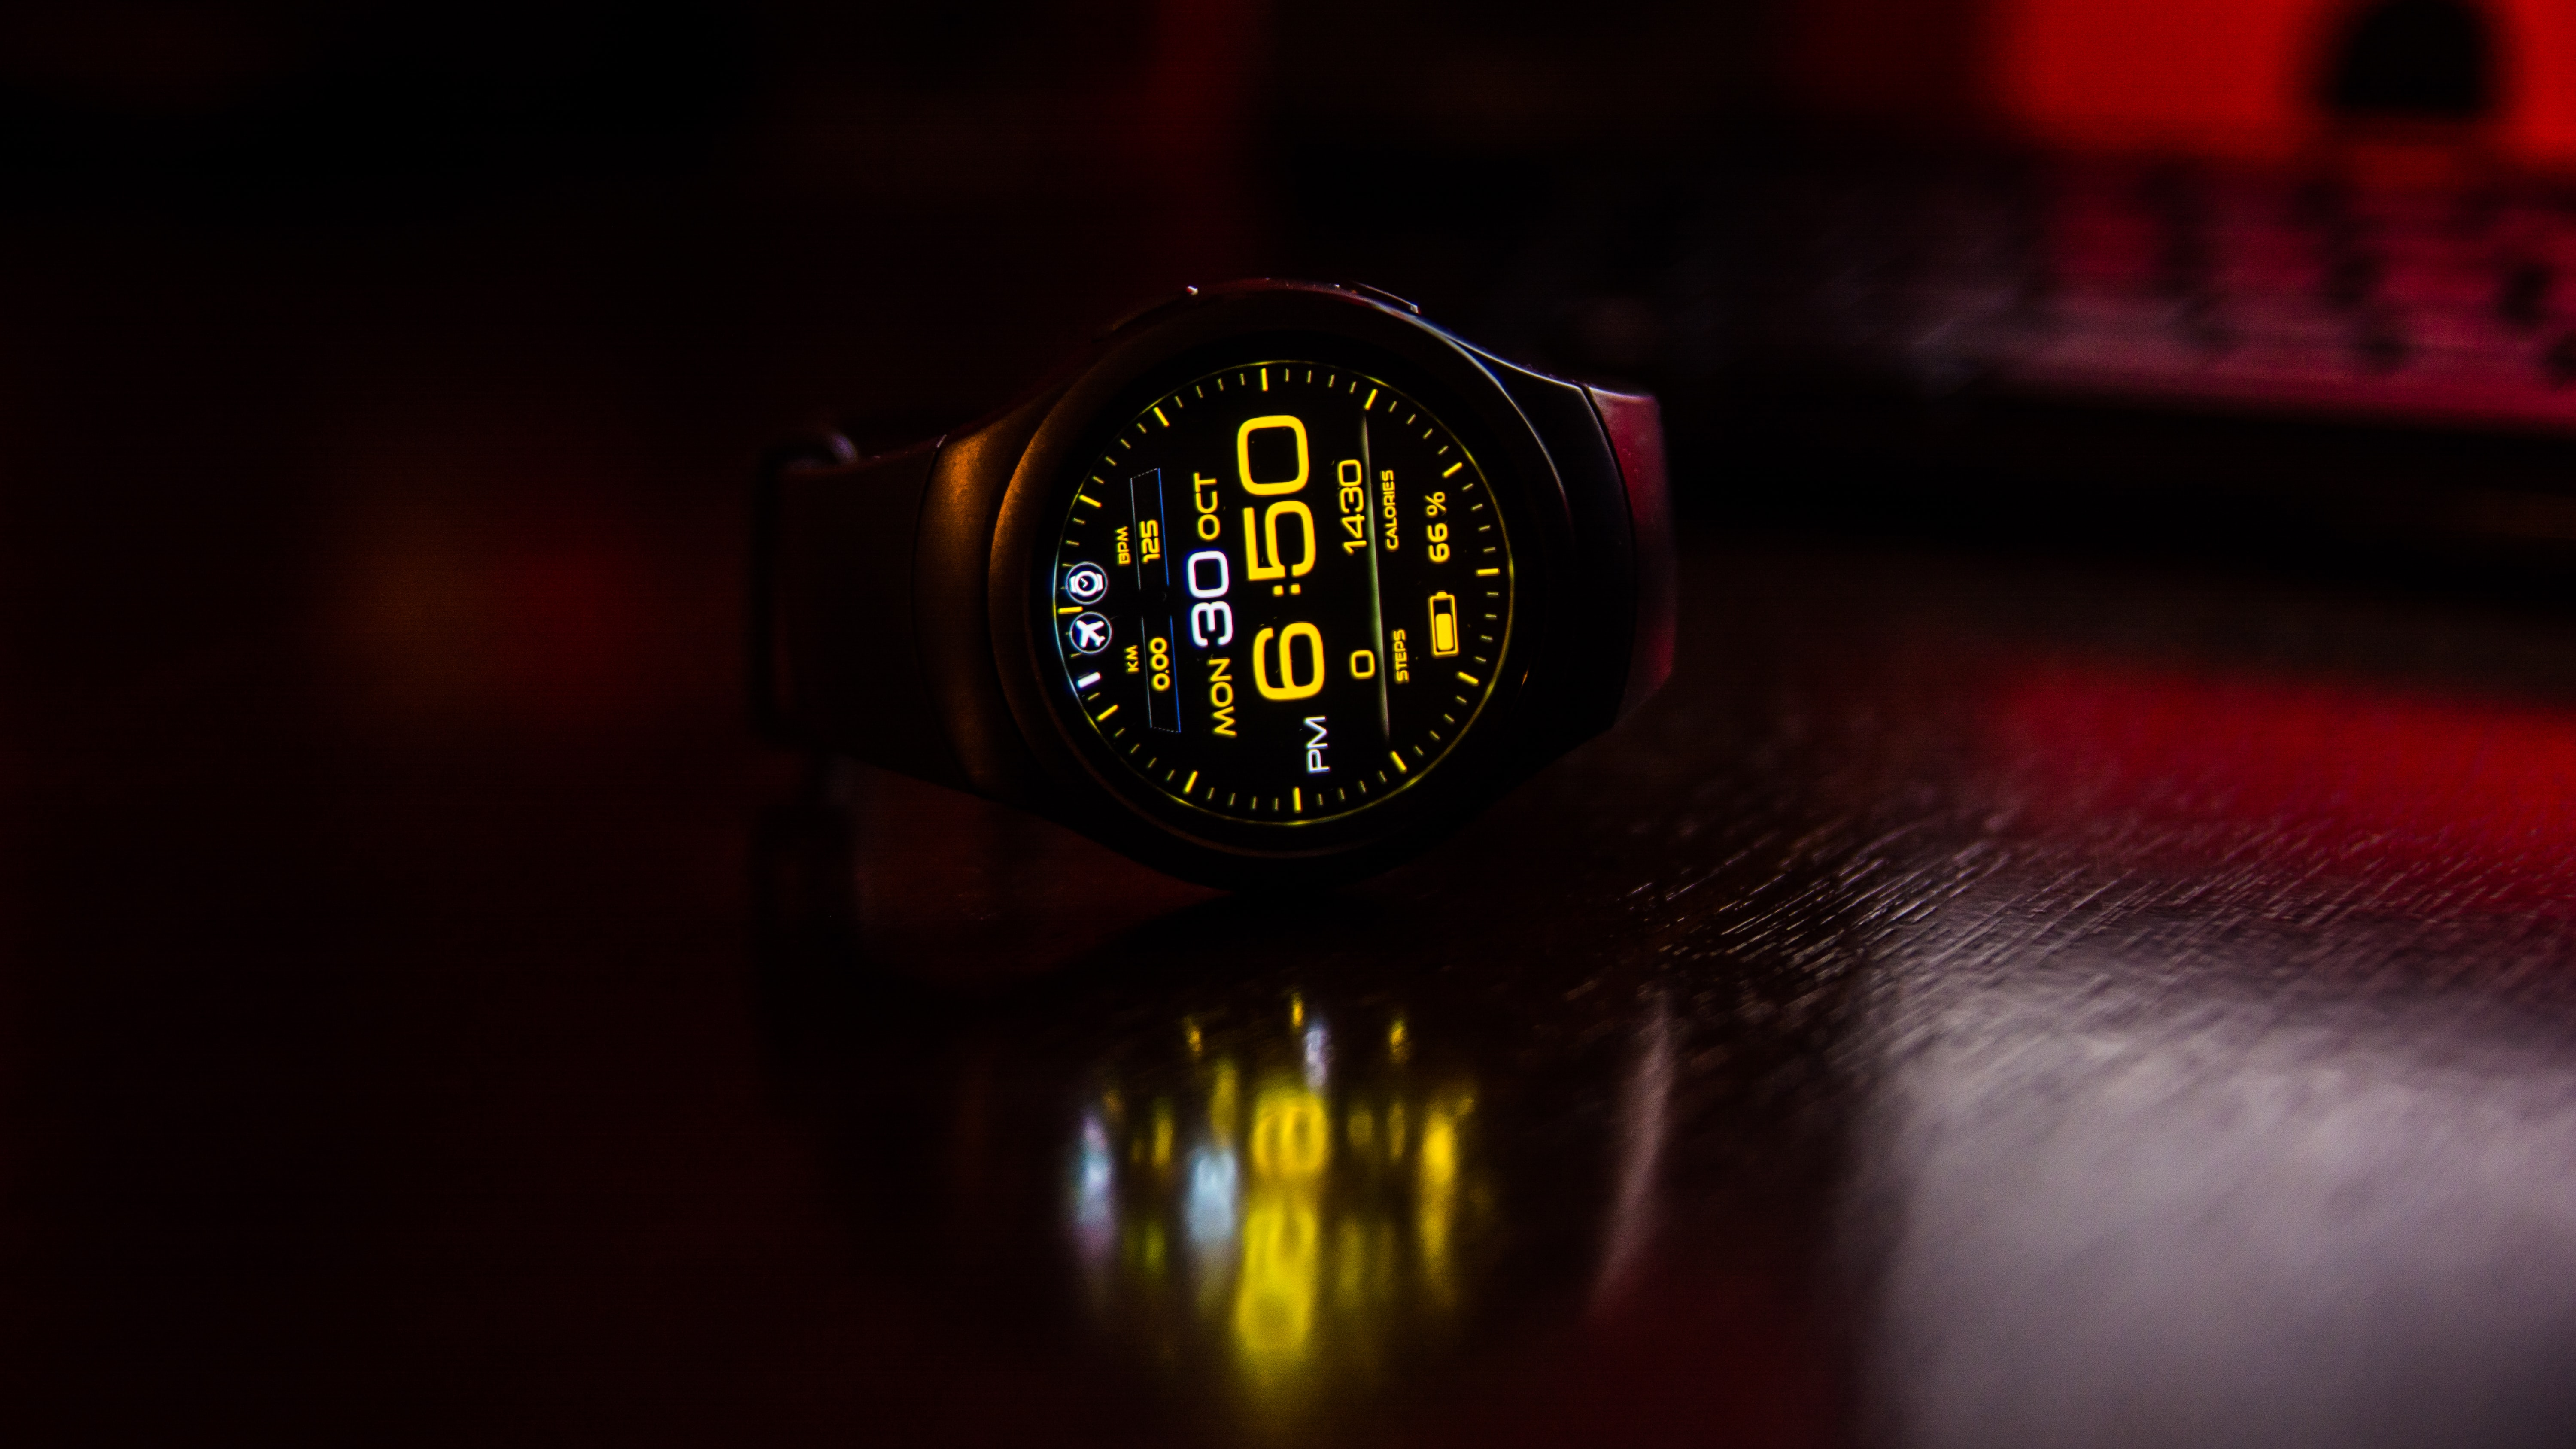 round black digital watch at 6:50